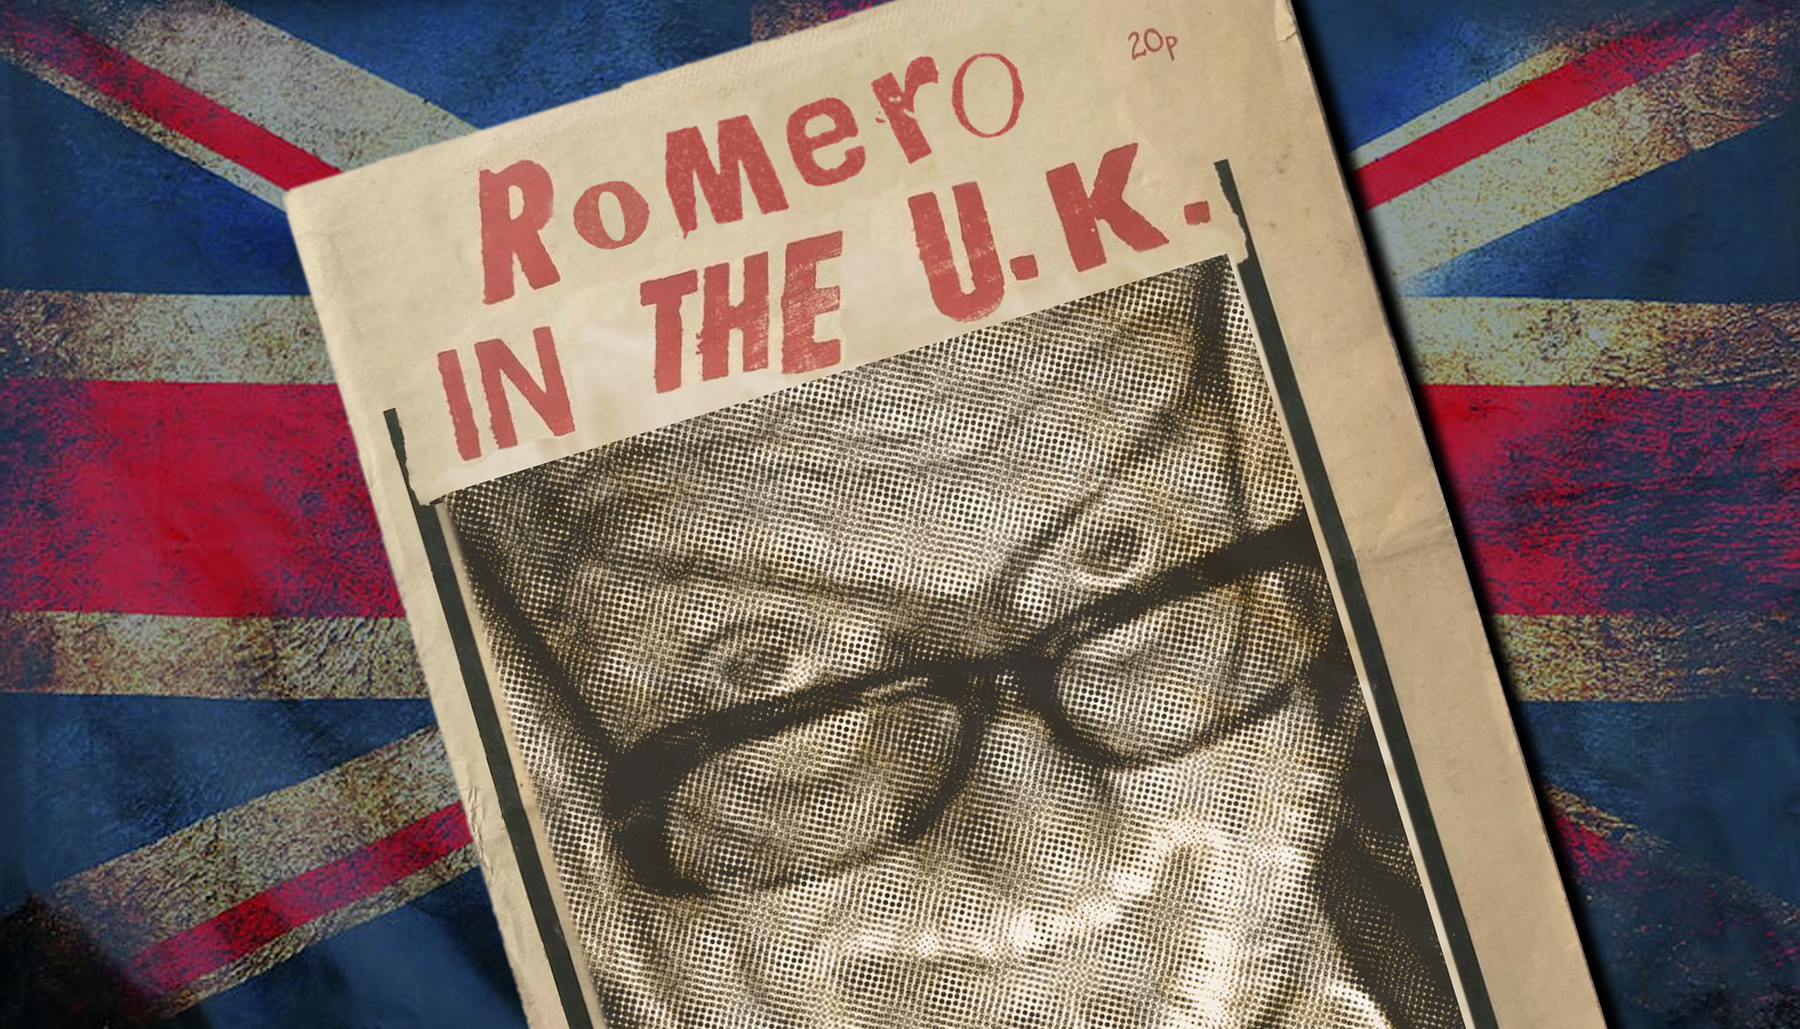 romero-in-the-uk-1